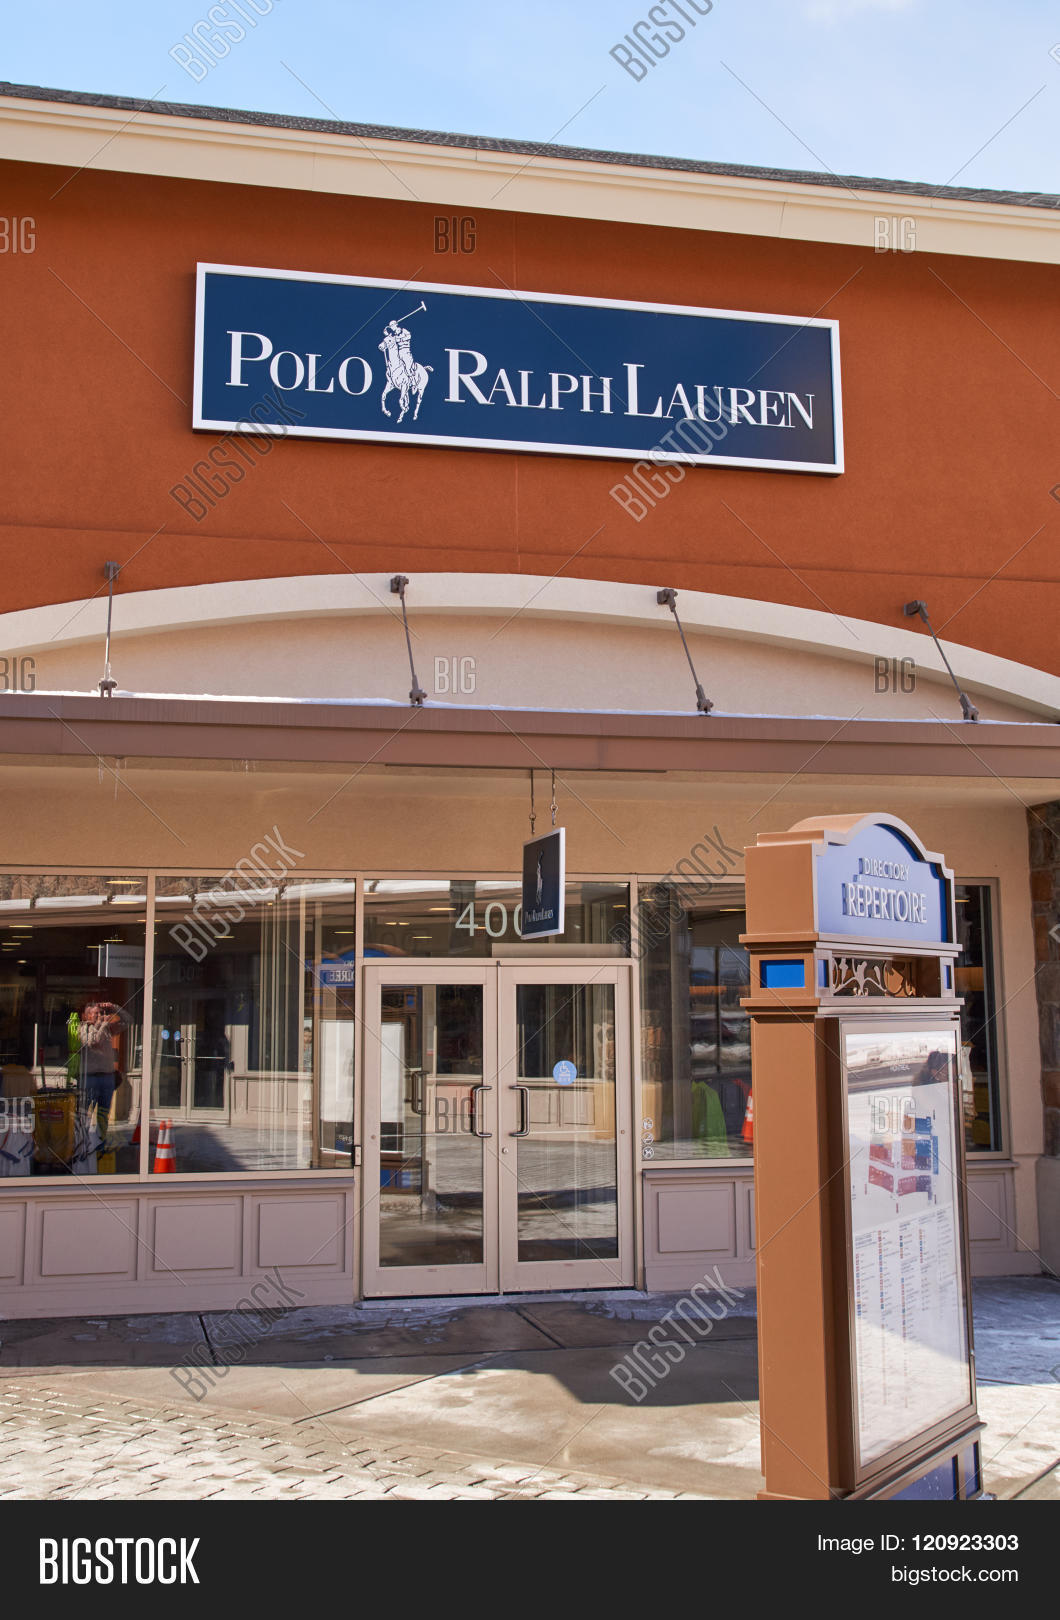 Exclusions: 25% OFF: This offer is valid through September 19, , at Polo Ralph Lauren Factory Stores in the US, Puerto Rico, and Canada goodellsfirstchain.tk offer is not valid at Ralph Lauren stores, goodellsfirstchain.tk, the Ralph Lauren luxury outlet, or the Polo Ralph Lauren .